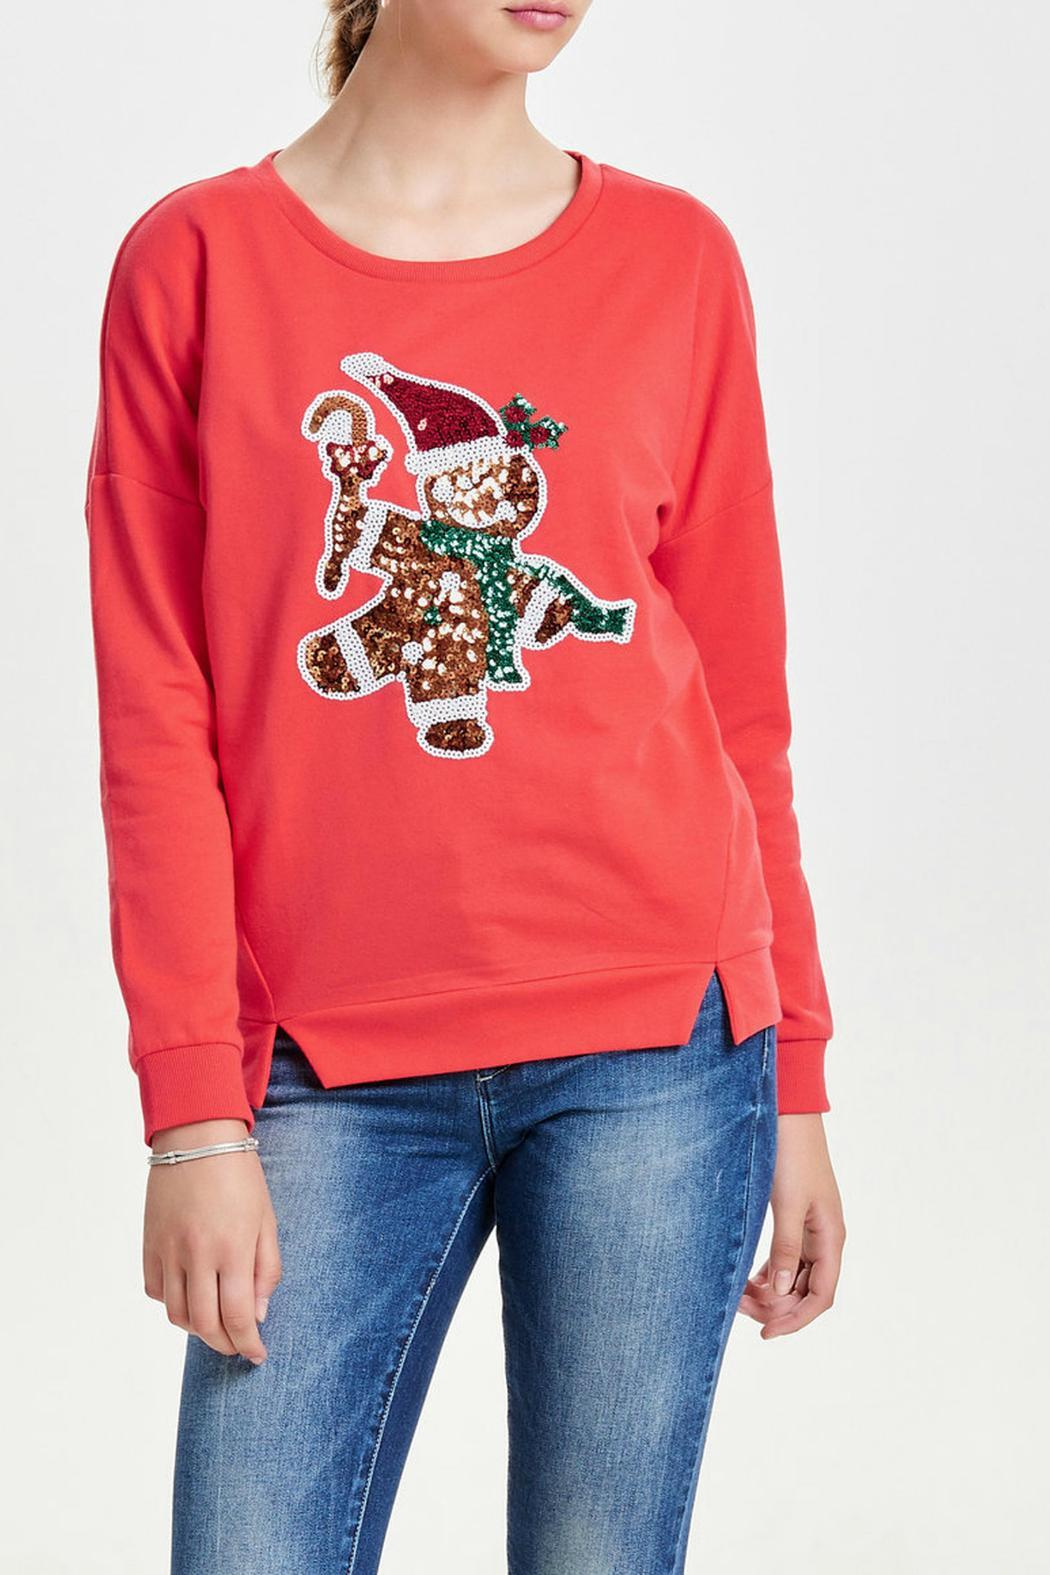 ONLY Festive Christmas Sweater from Canada by Manhattan Clothing ...